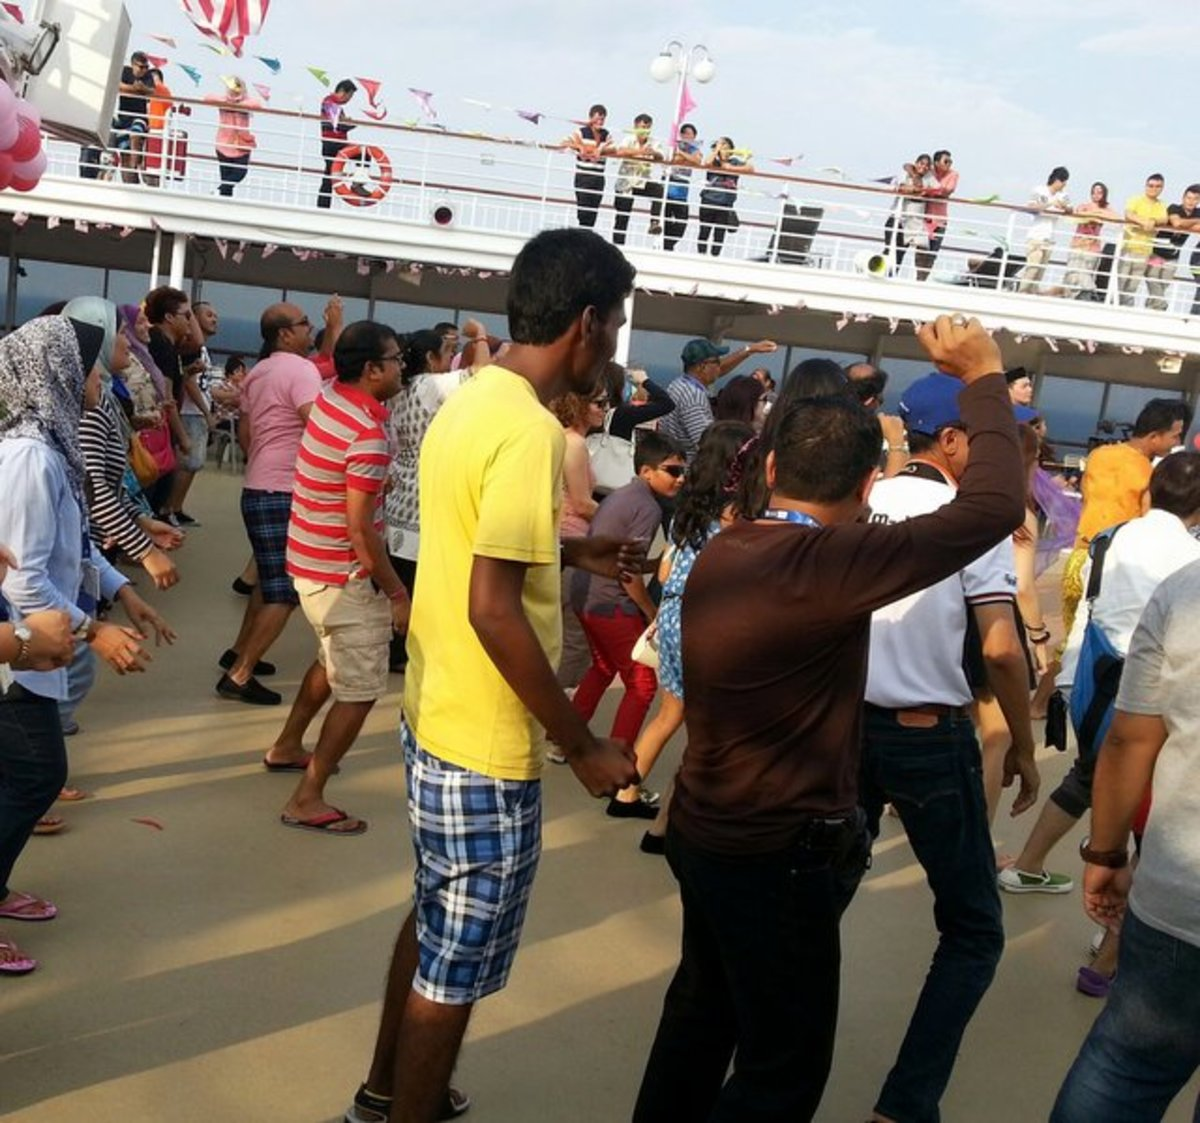 Morning dancexercise at the pool deck area on Star Cruises Superstar Libra